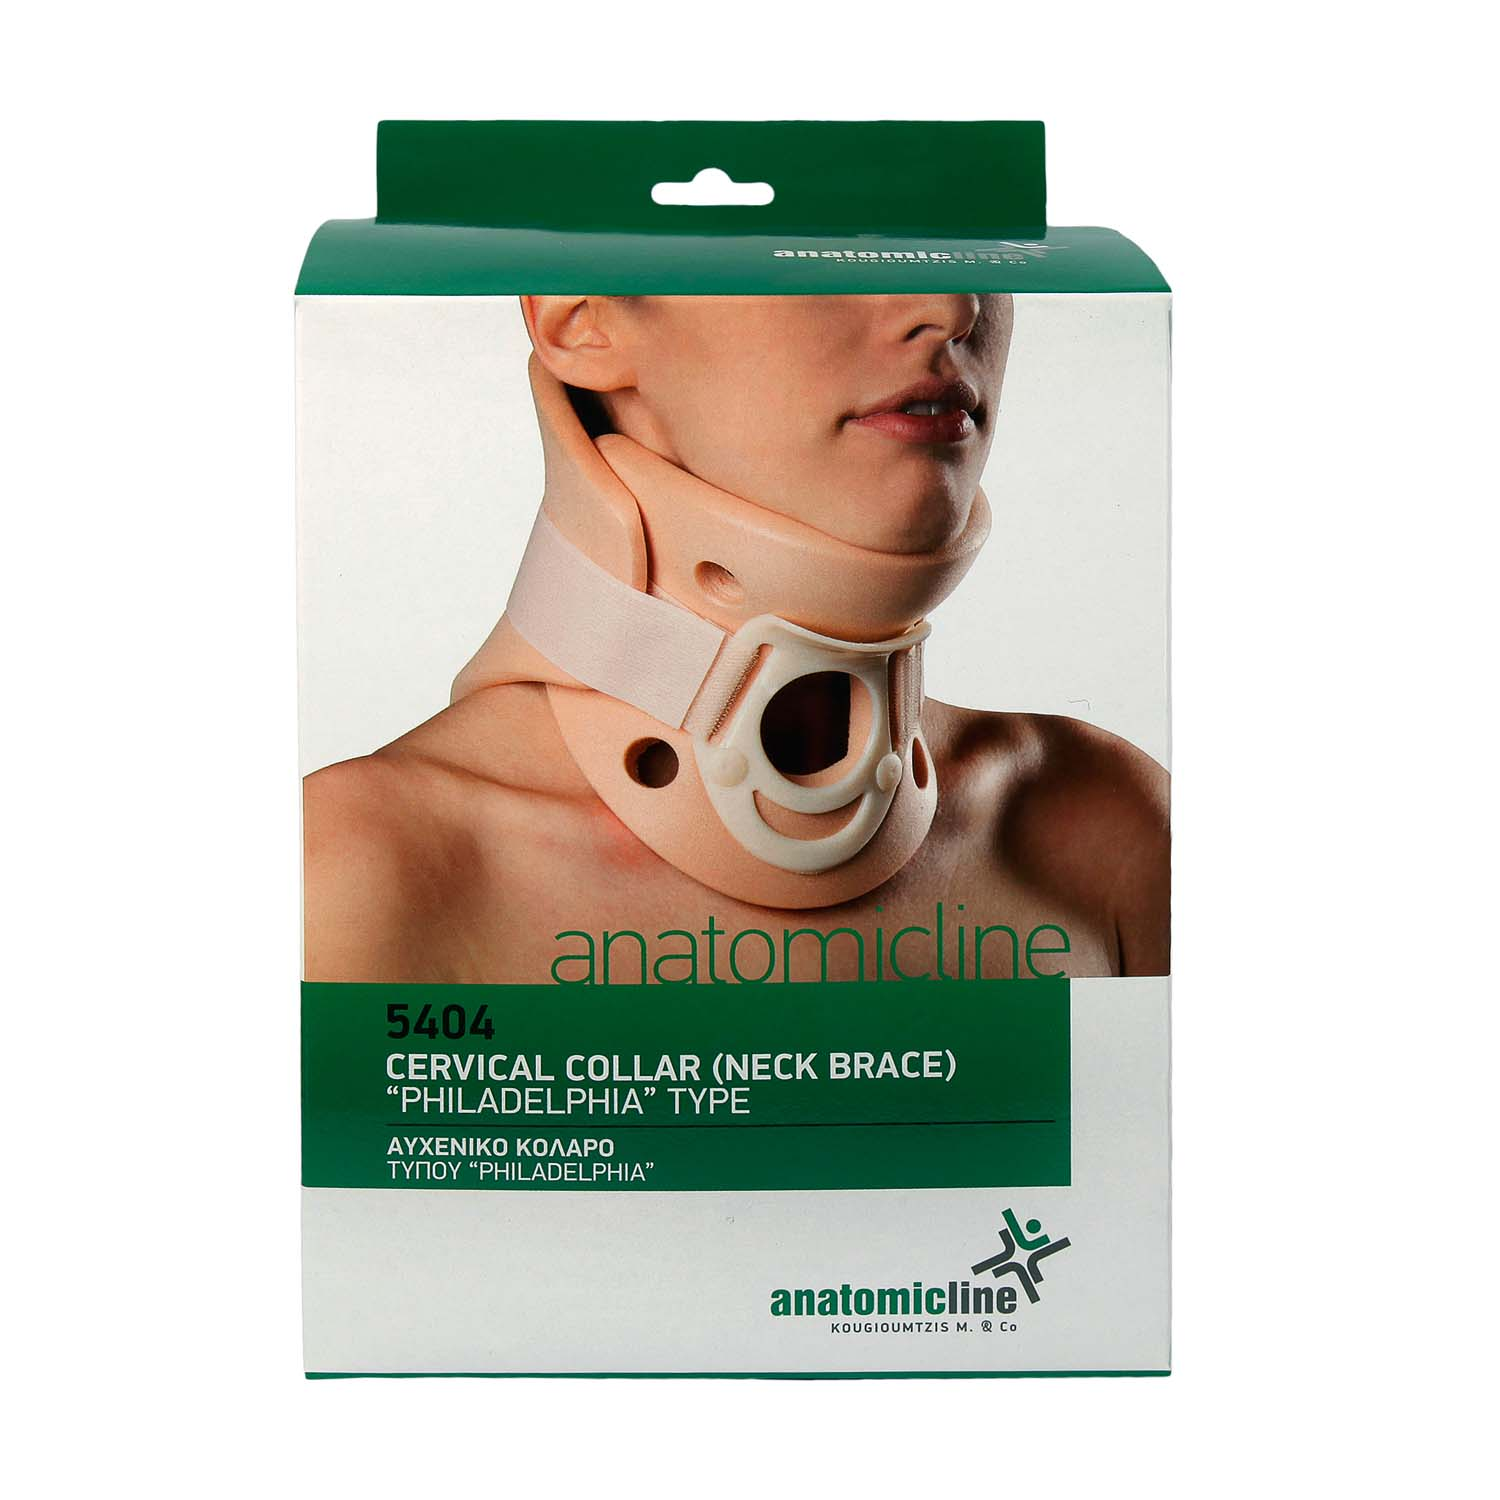 Cervical collar (neck brace) - Philadelphia type